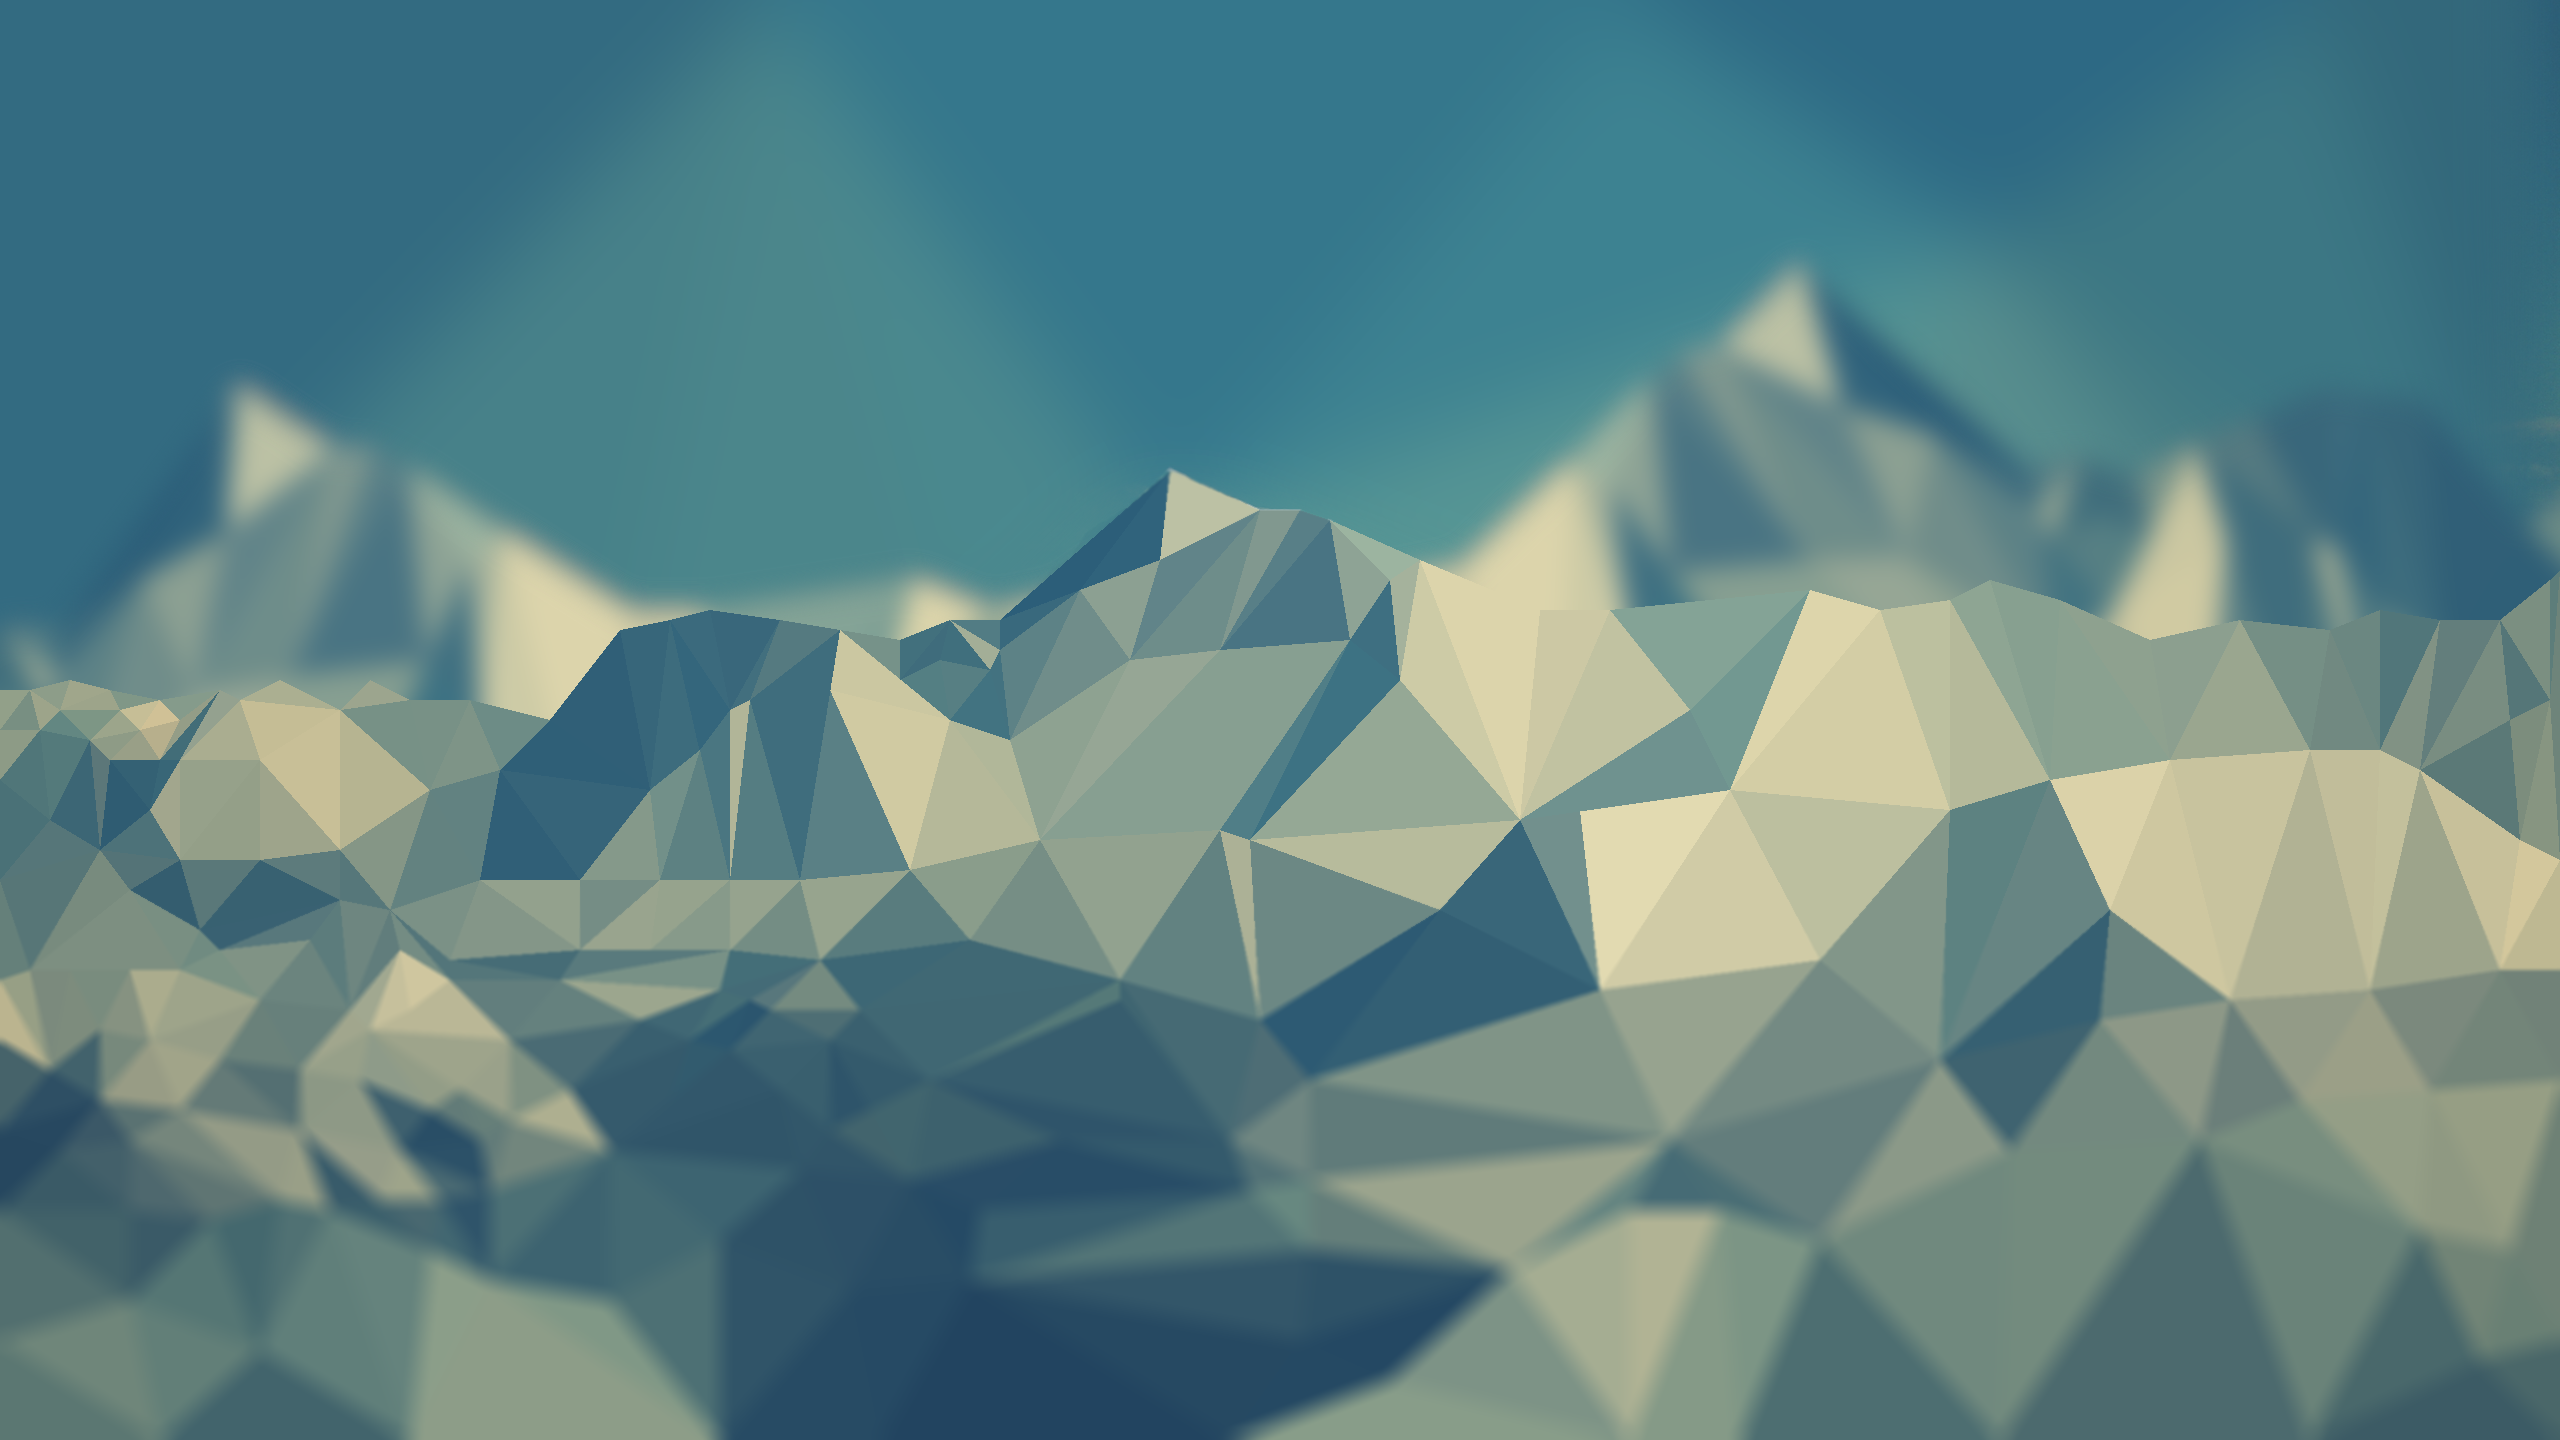 My favorite low poly wallpaper : wallpapers